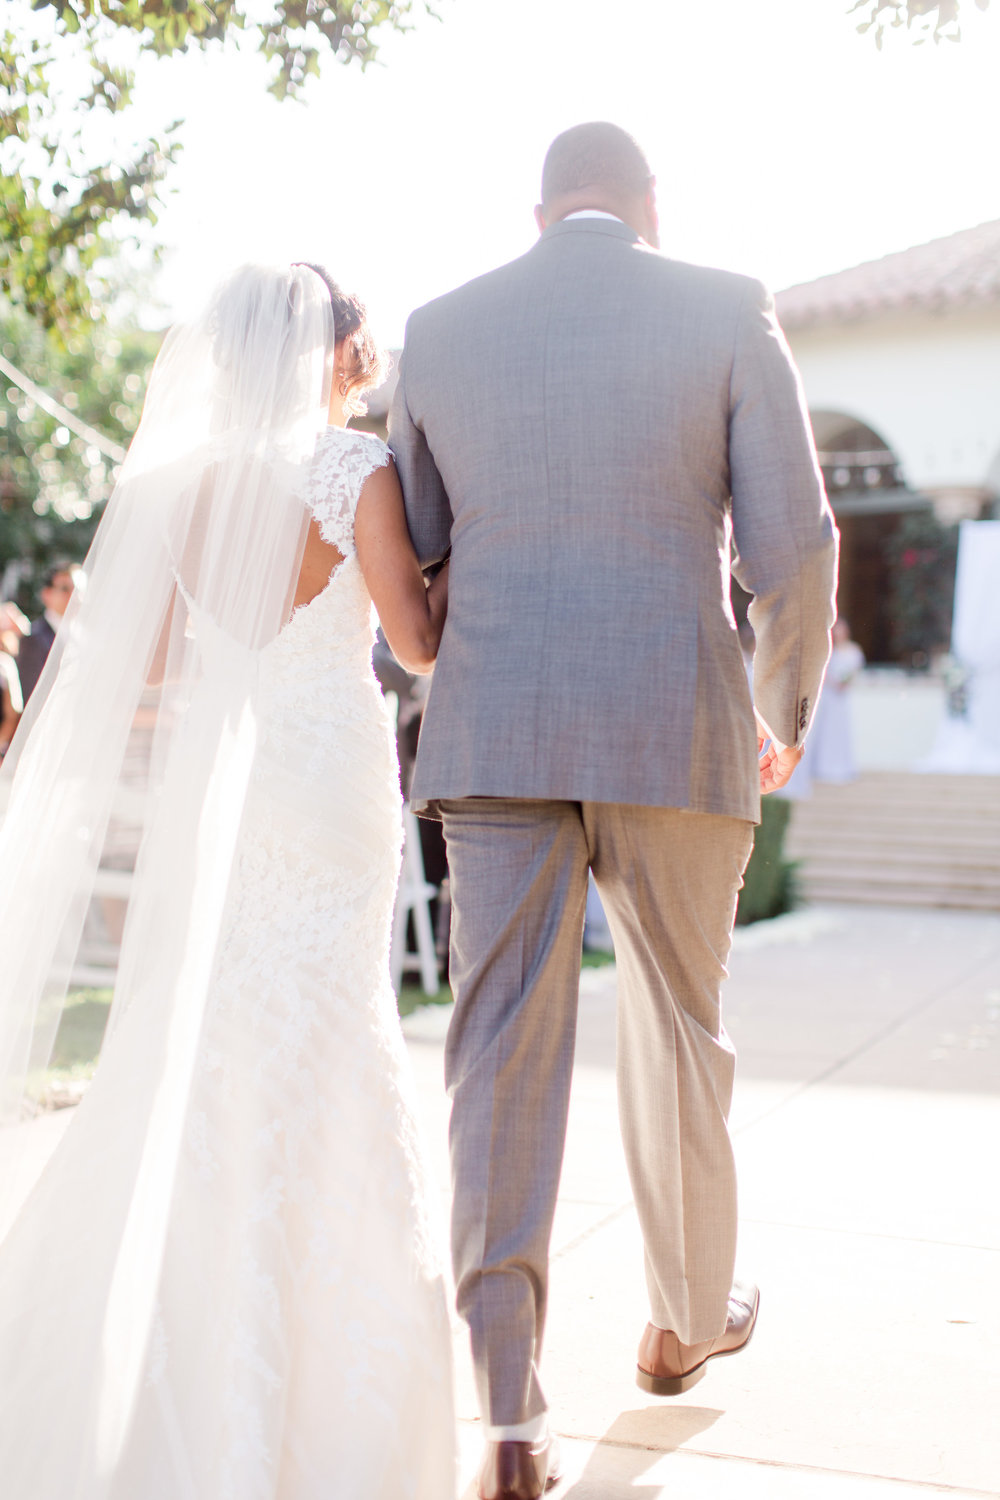 AngelicaMariePhotography_AlvarezWedding_SpanishHillsCountryClub_VenturaCountyWeddingPhotographer_388.JPG